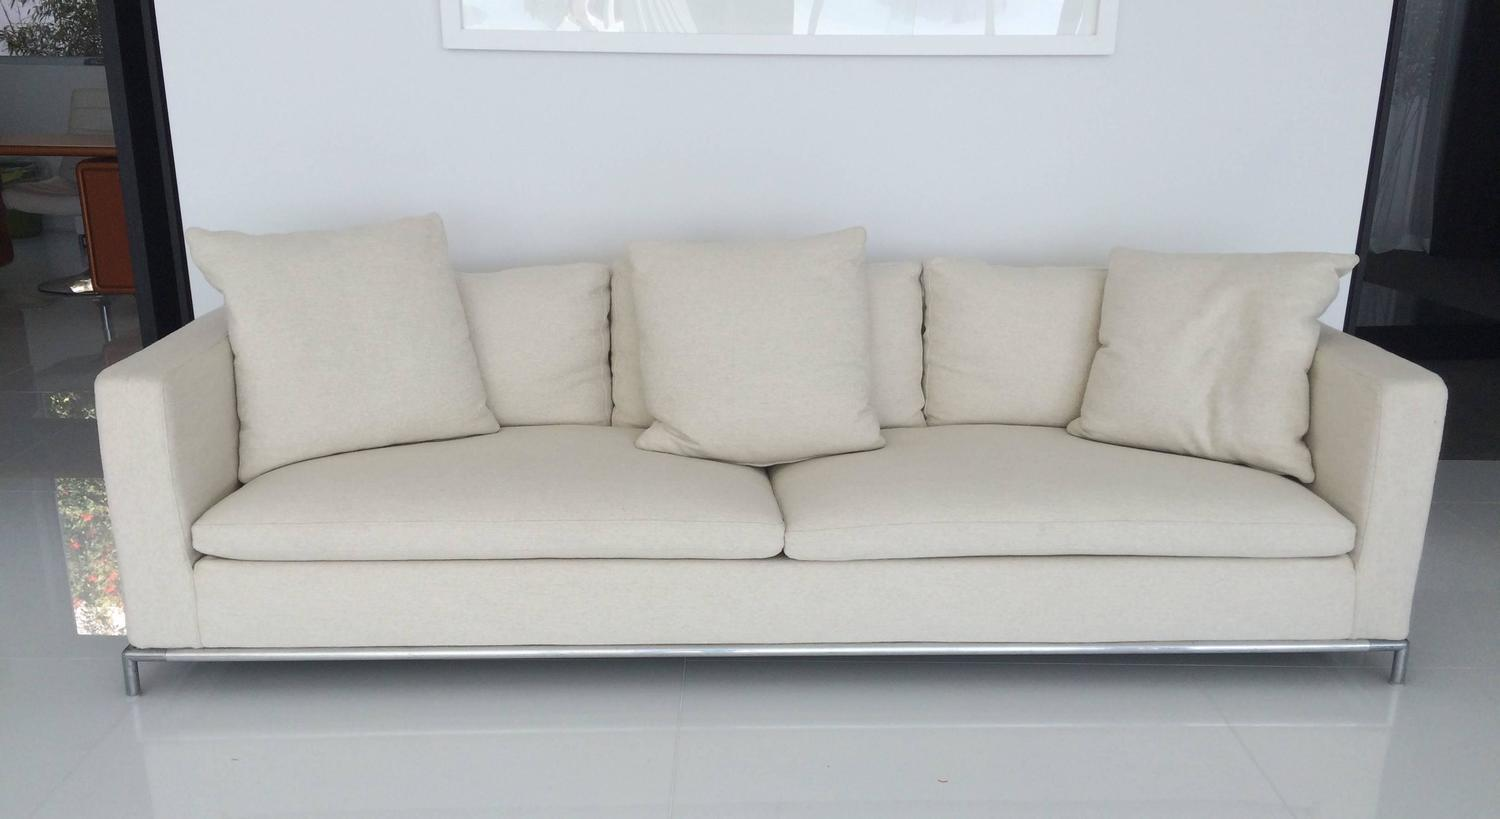 George Sofa By Antonio Citterio For B B Italia George G243bl At